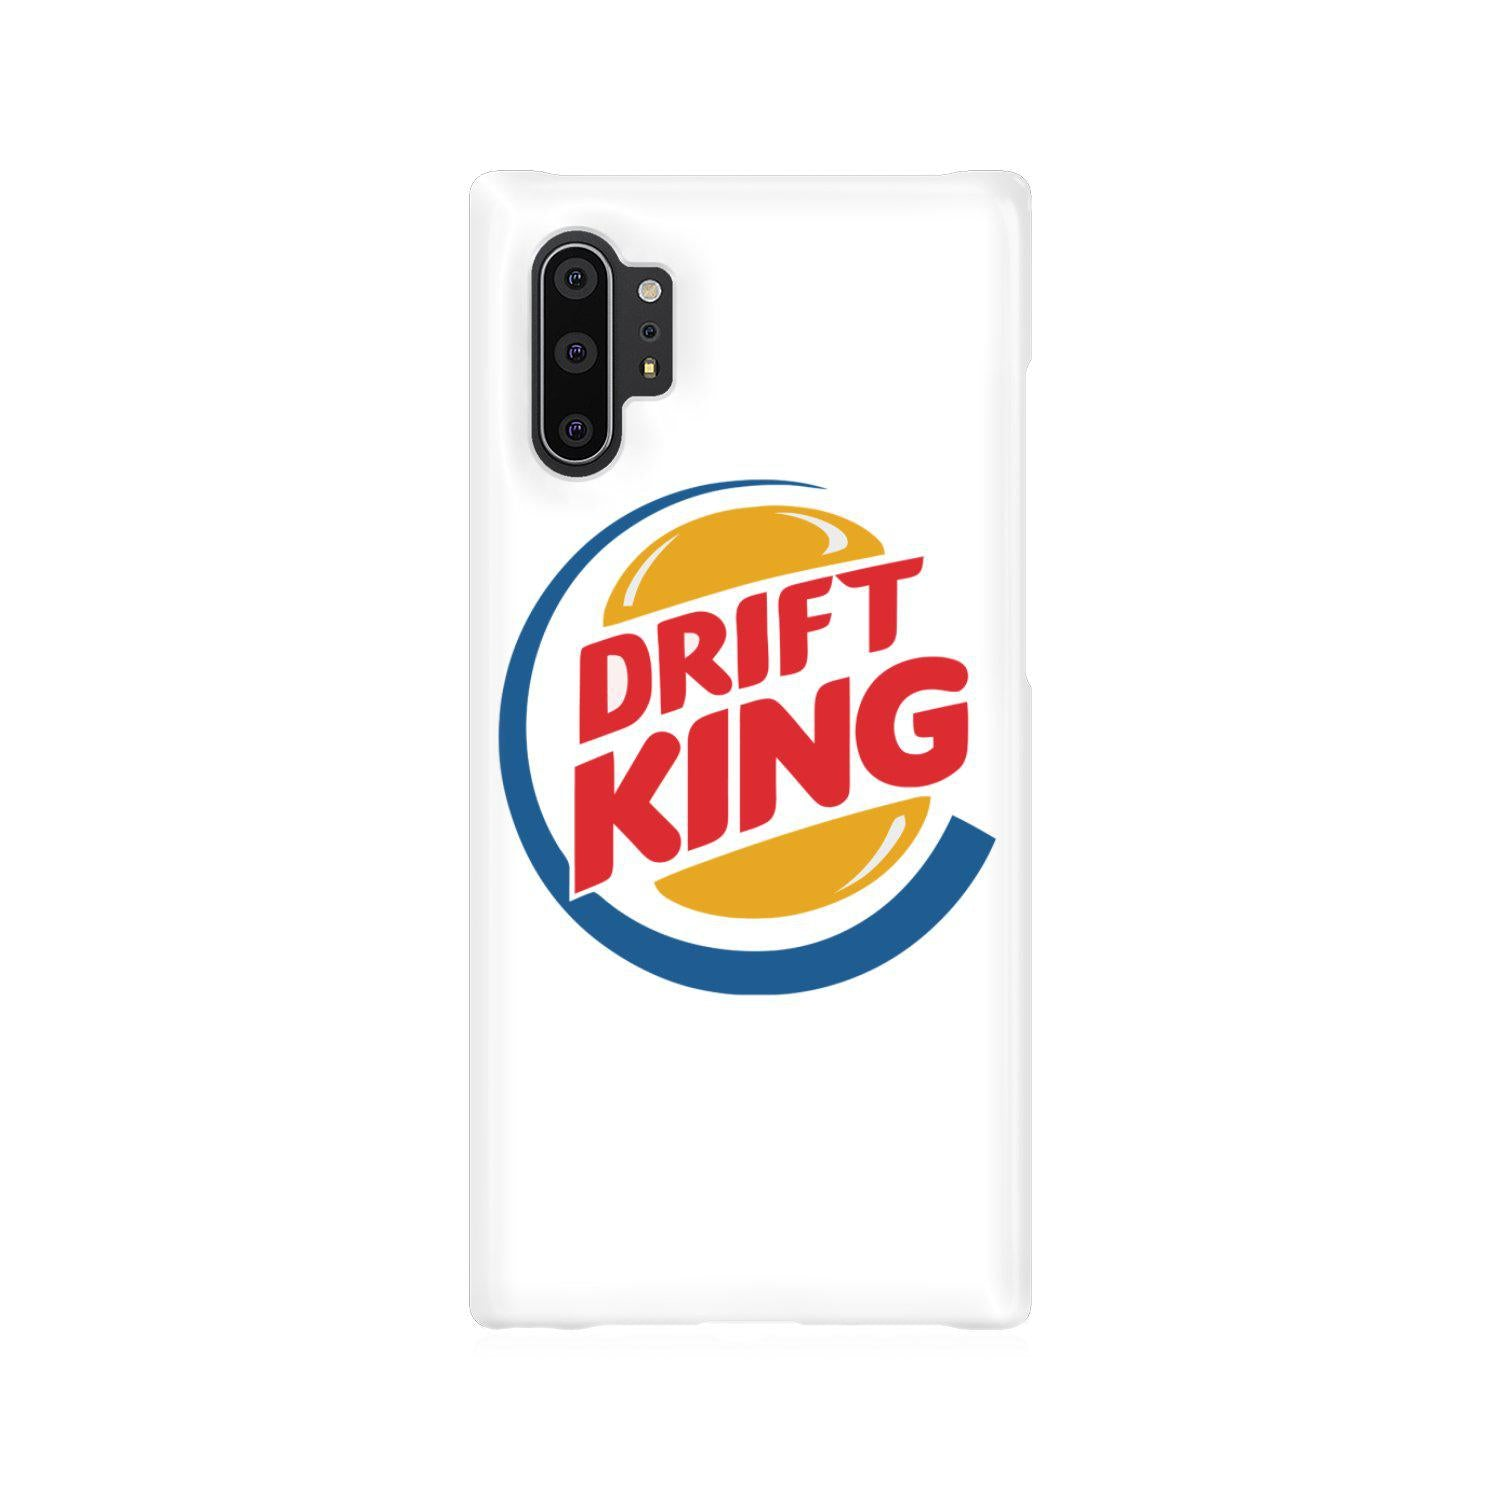 Drift King - Snap Case - for Apple iPhone Models - TunerLifestyle